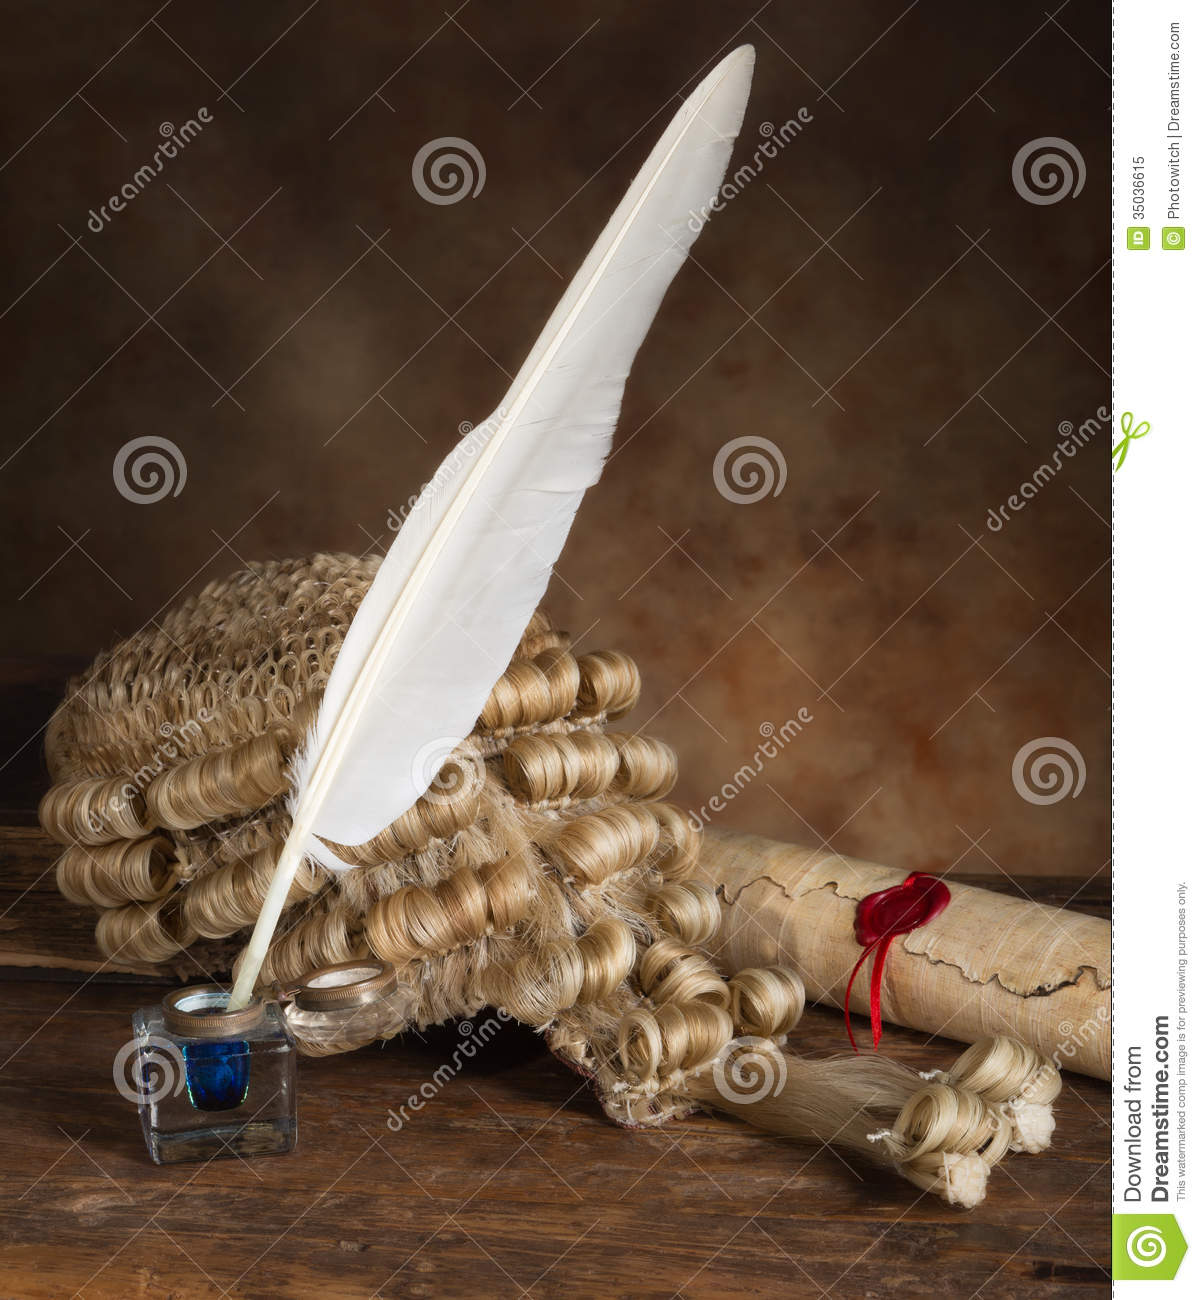 Authentic Scrolls: Quill Scroll And Wig Stock Image. Image Of Legal, Lawyer